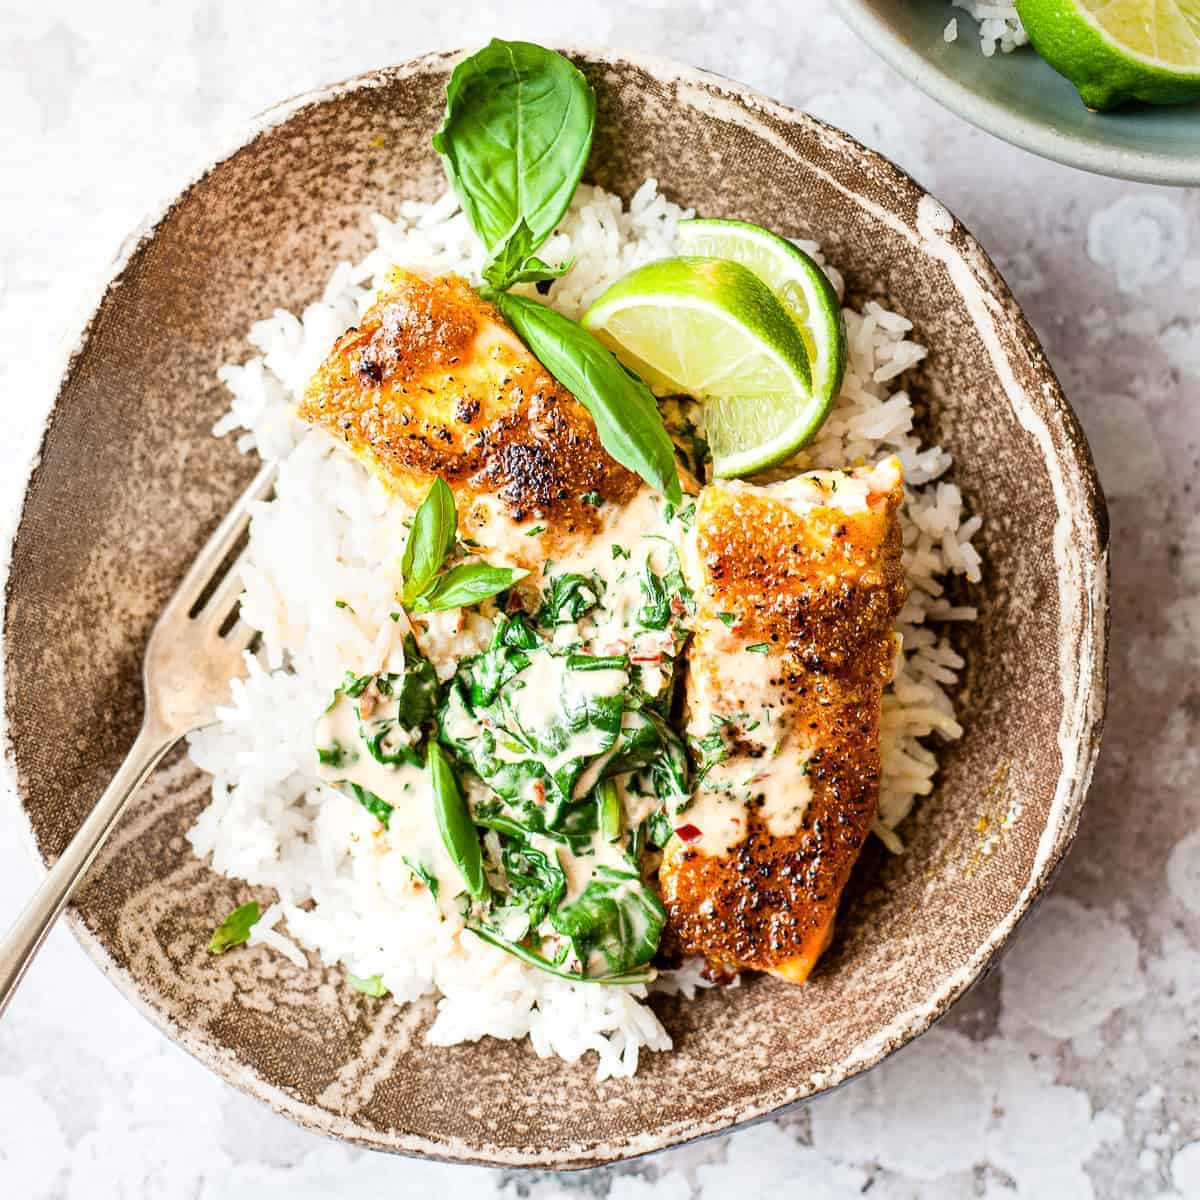 Creamy coconut curry salmon 30 minute meal with Aldi ingredients.